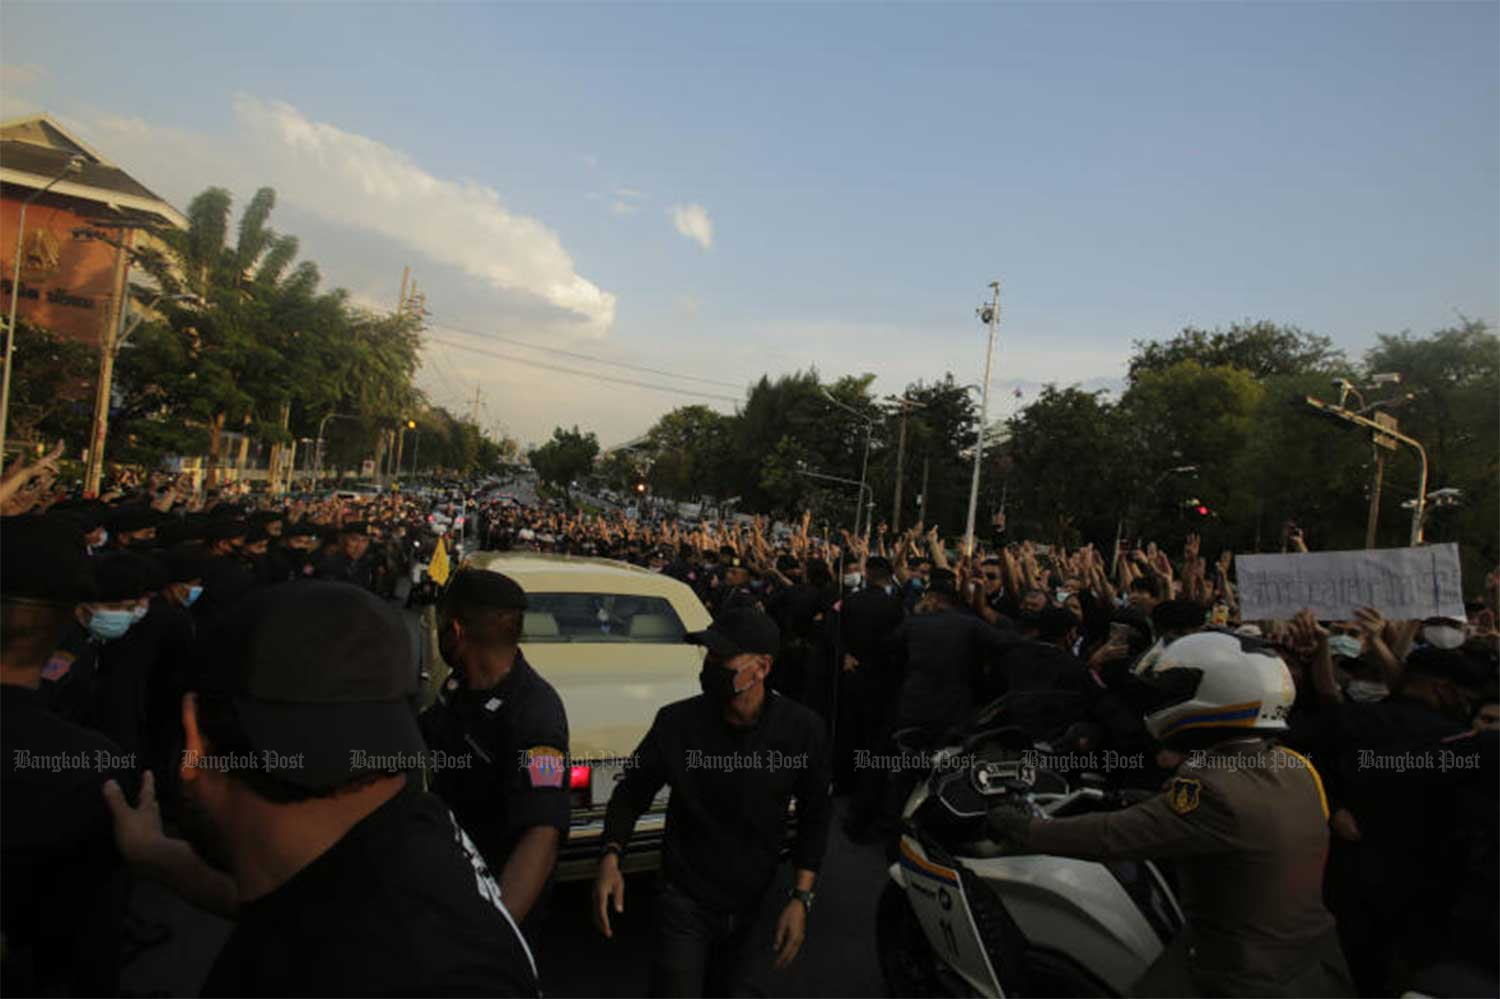 The royal motorcade carrying Her Majesty the Queen and His Royal Highness Prince Dipangkorn Rasmijoti passes through demonstrators near Government House on Oct 14. (Photo: Pornprom Satrabhaya)